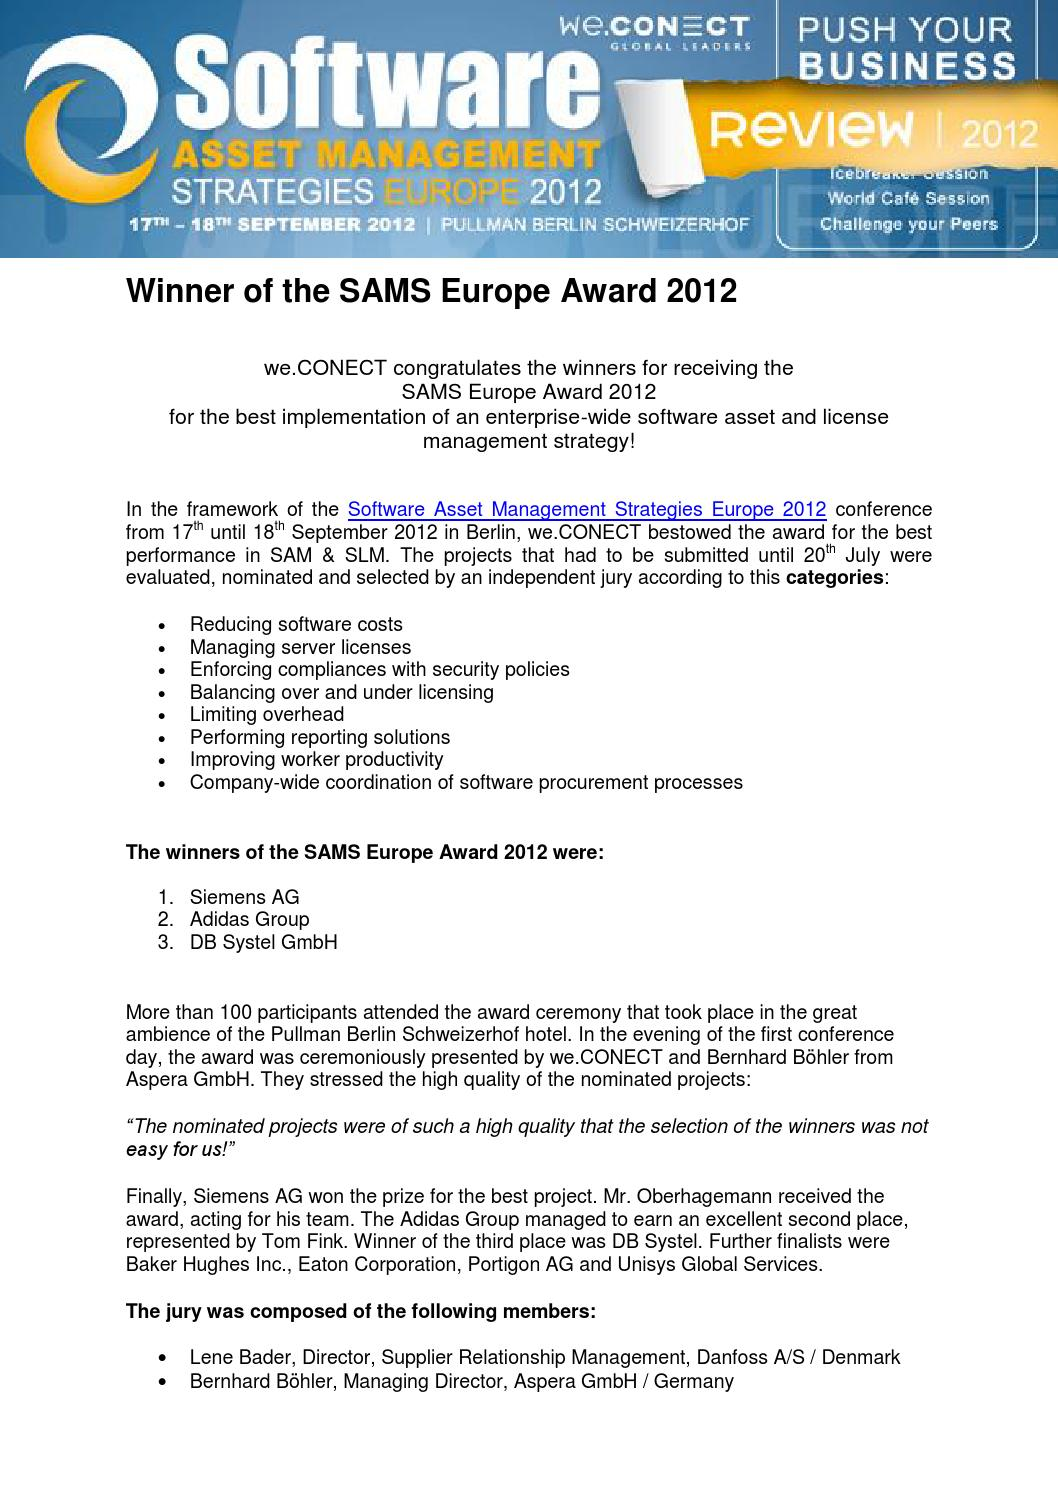 Review sams europe award 2012 by we CONECT Global Leaders